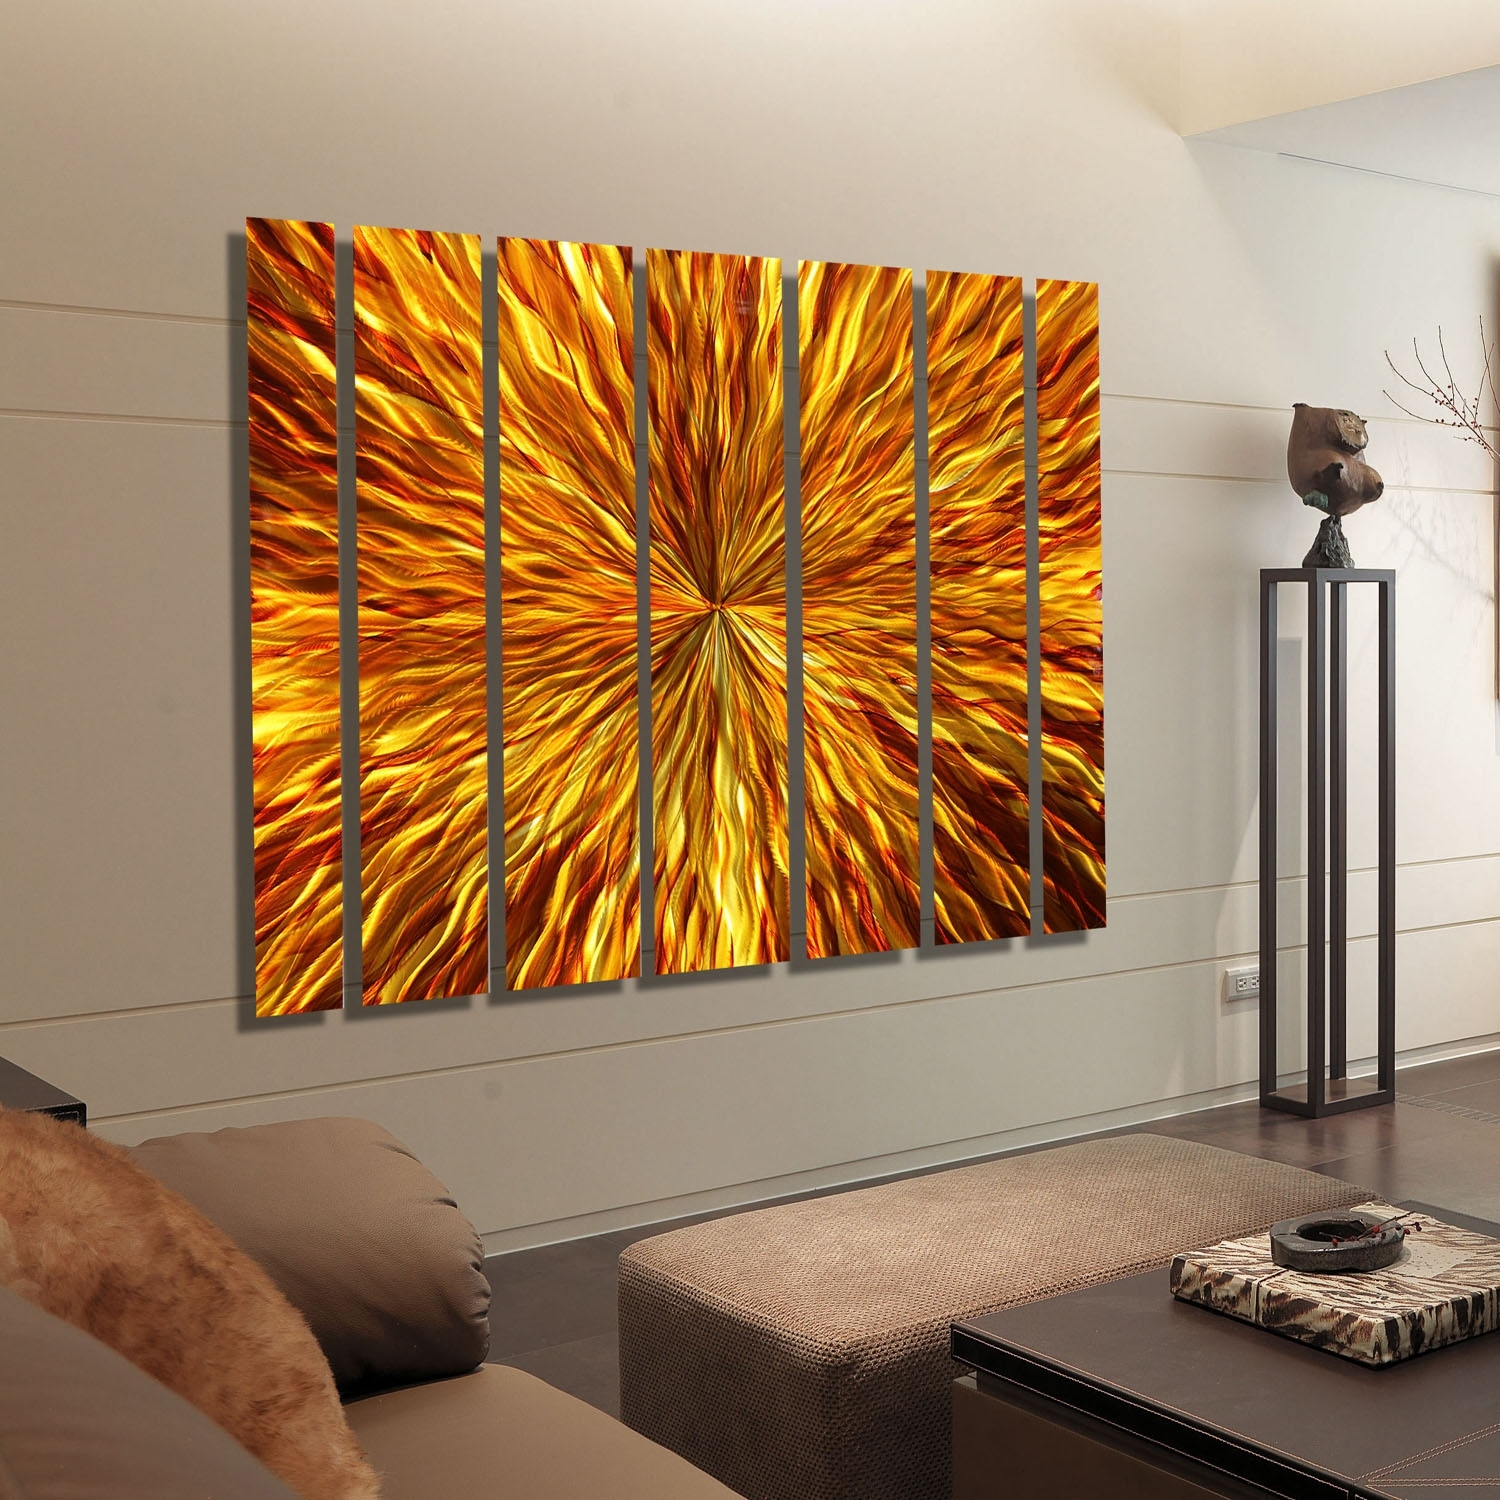 Amber Vortex Xl – Extra Large Modern Metal Wall Artjon Allen With Current Rectangular Wall Accents (View 2 of 15)